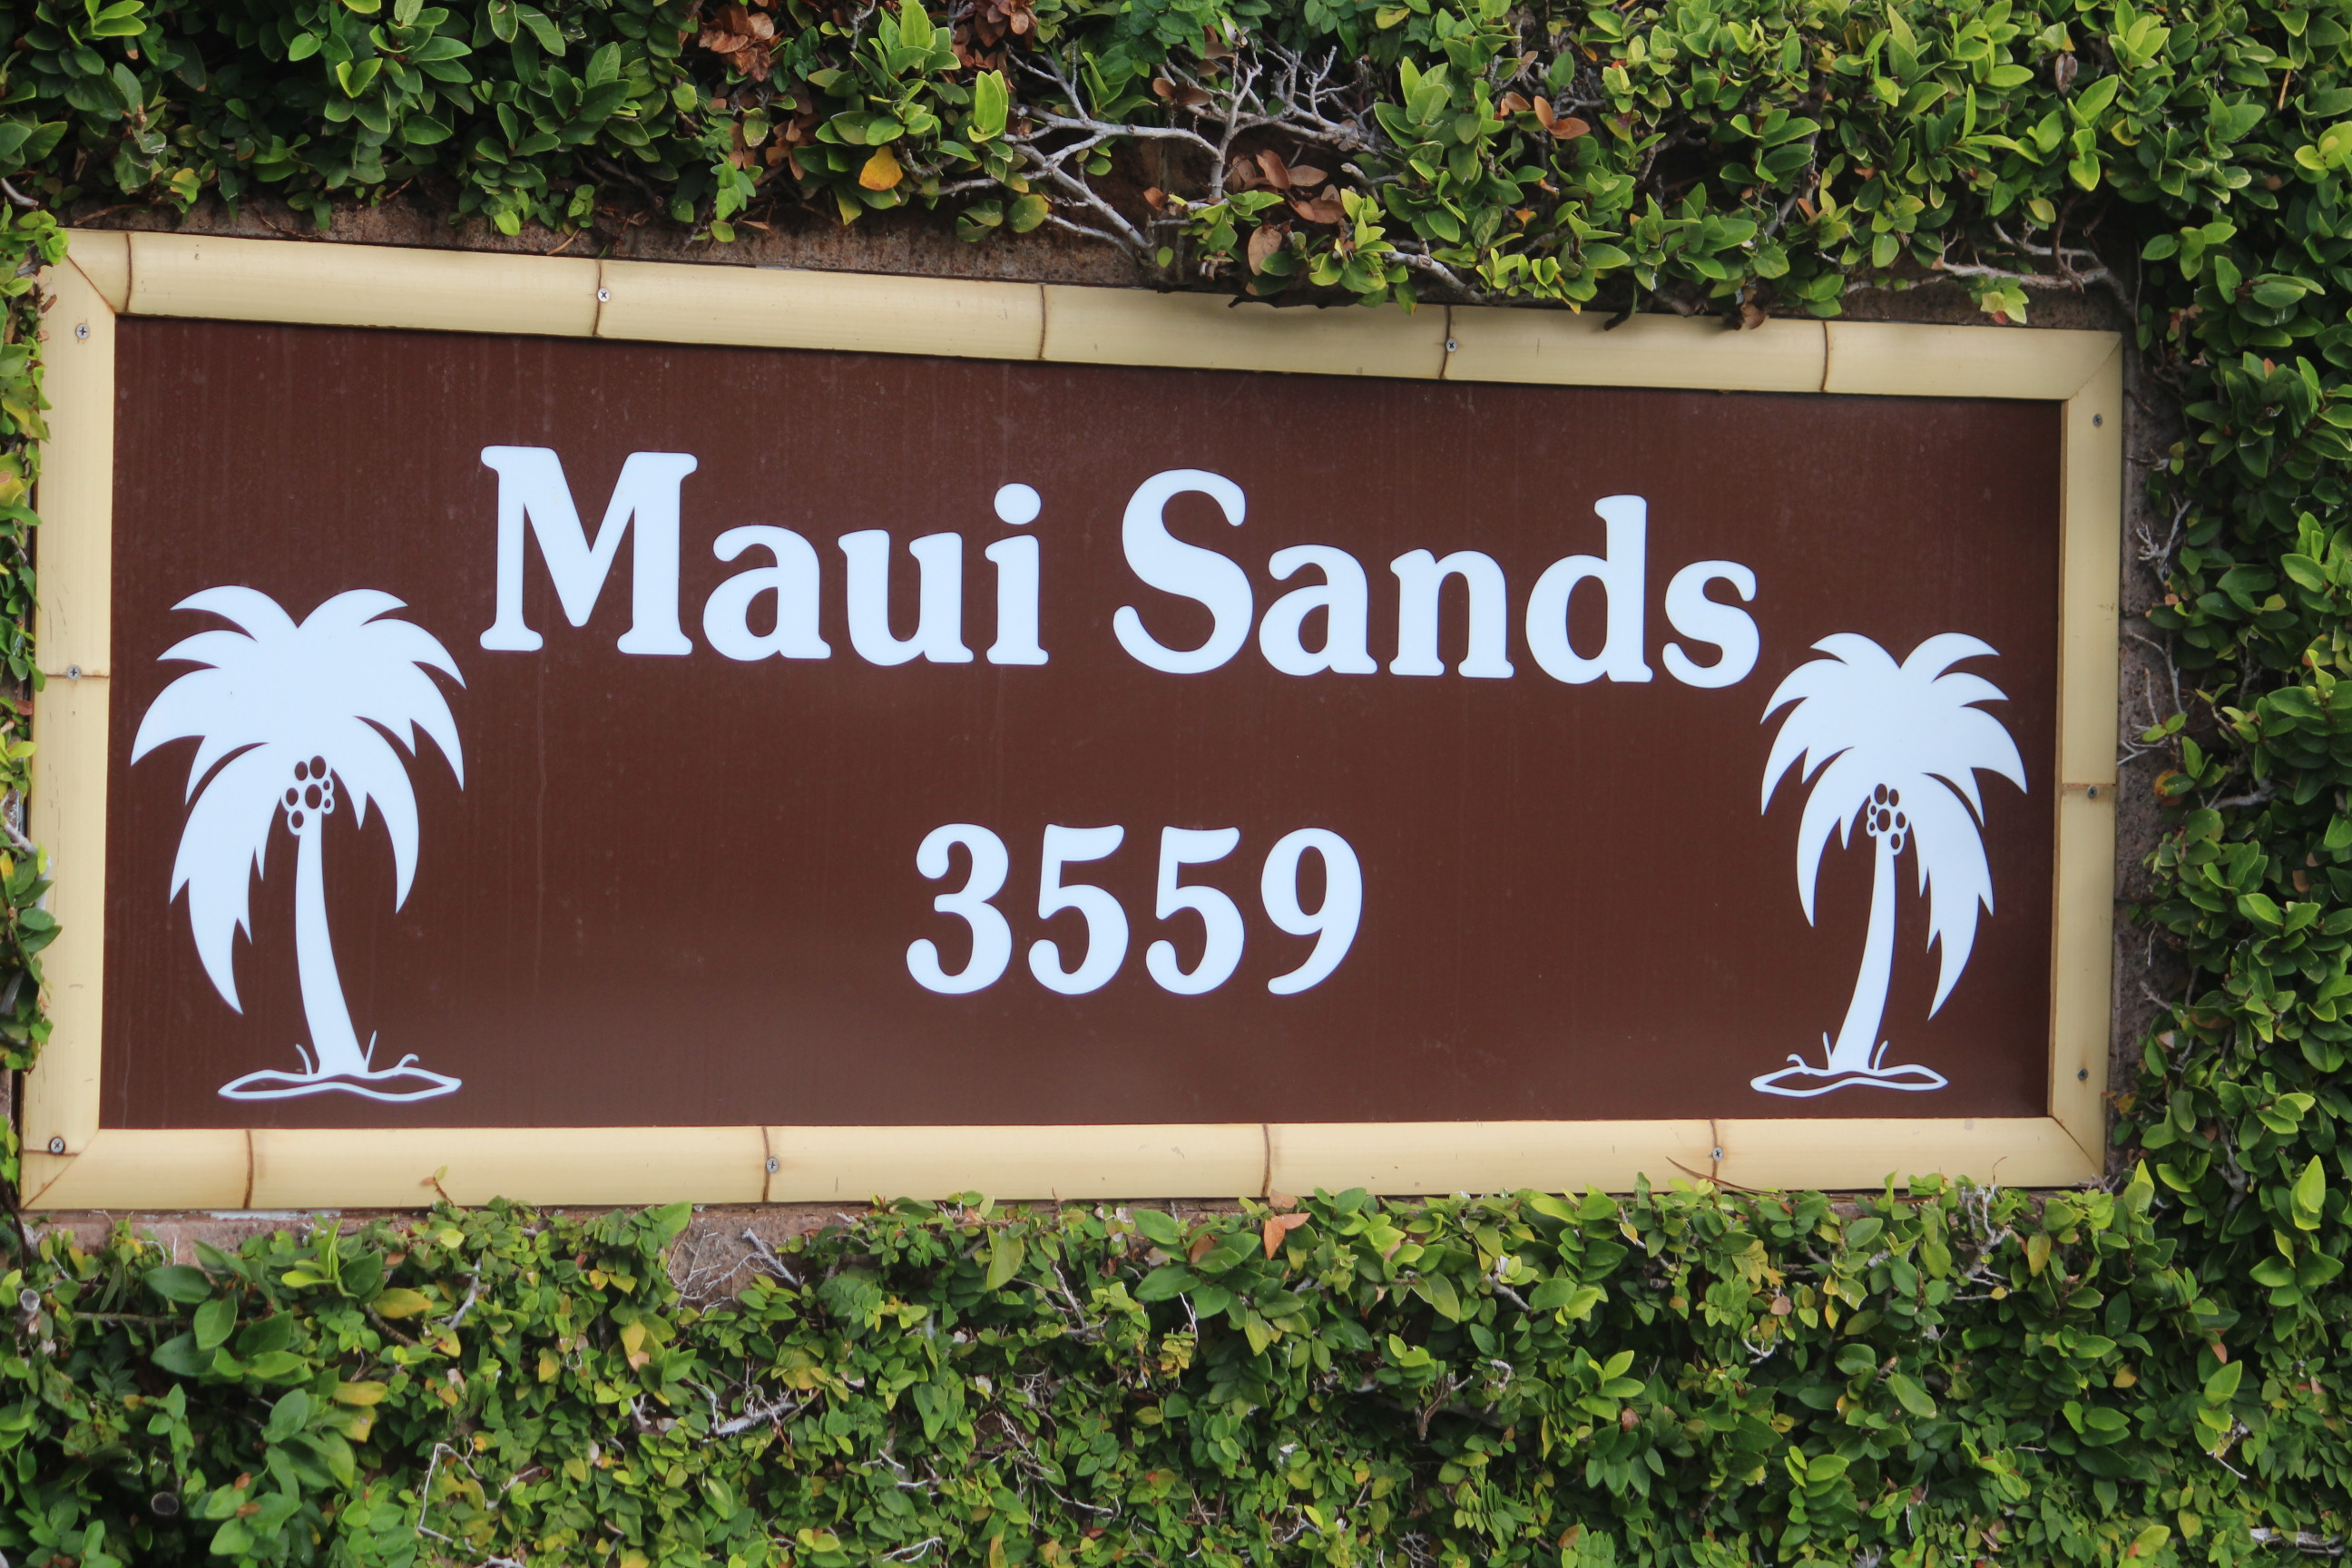 Image of the sign at the entrance to Maui Sands